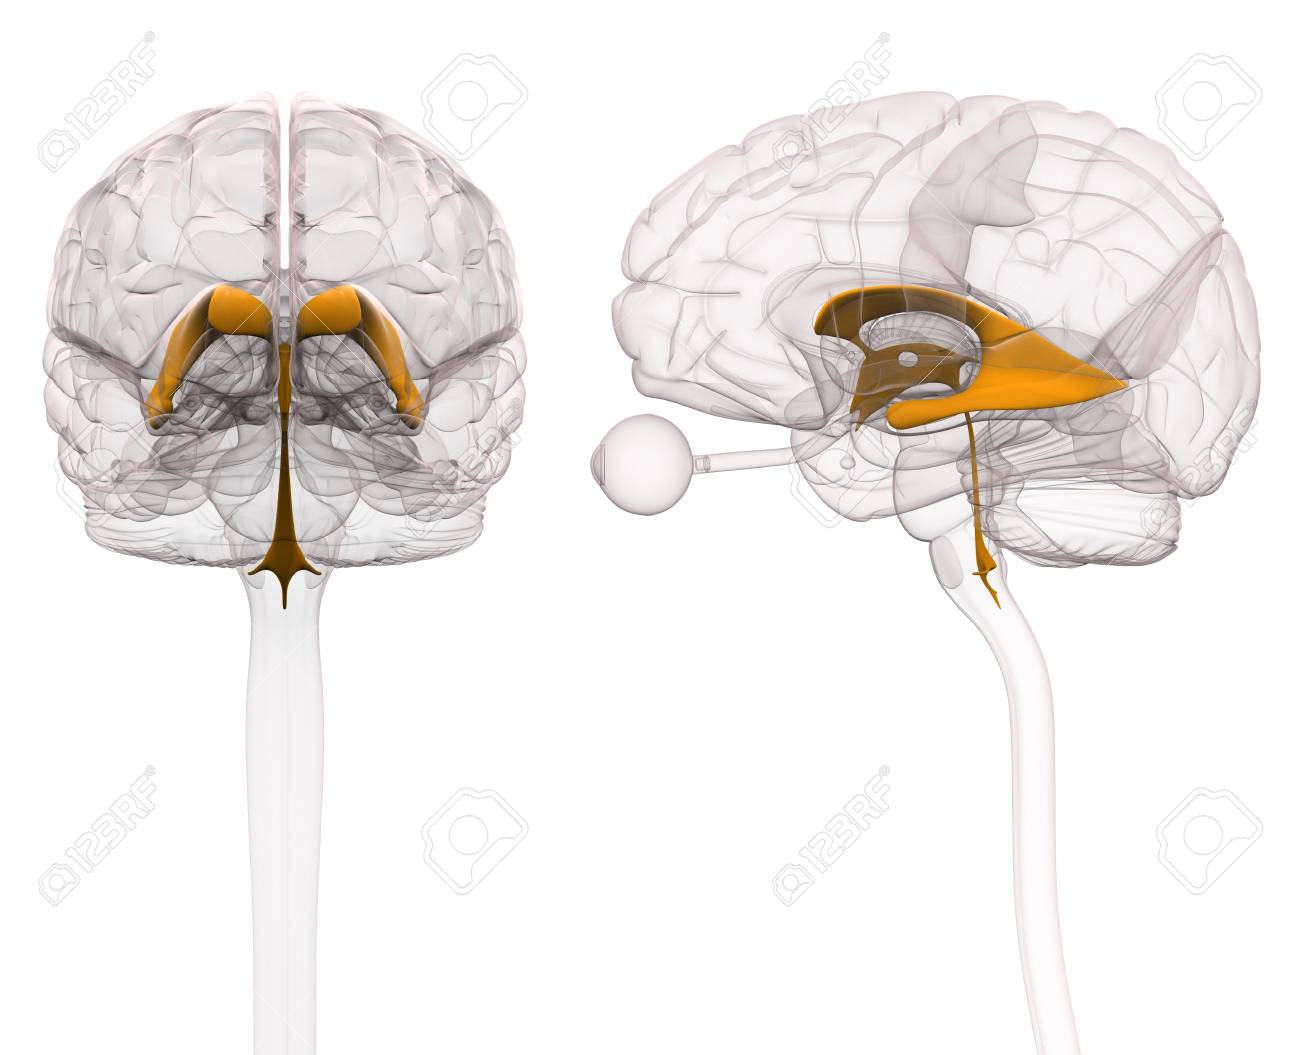 Ventricles Of Brain Anatomy Stock Photo, Picture And Royalty Free ...